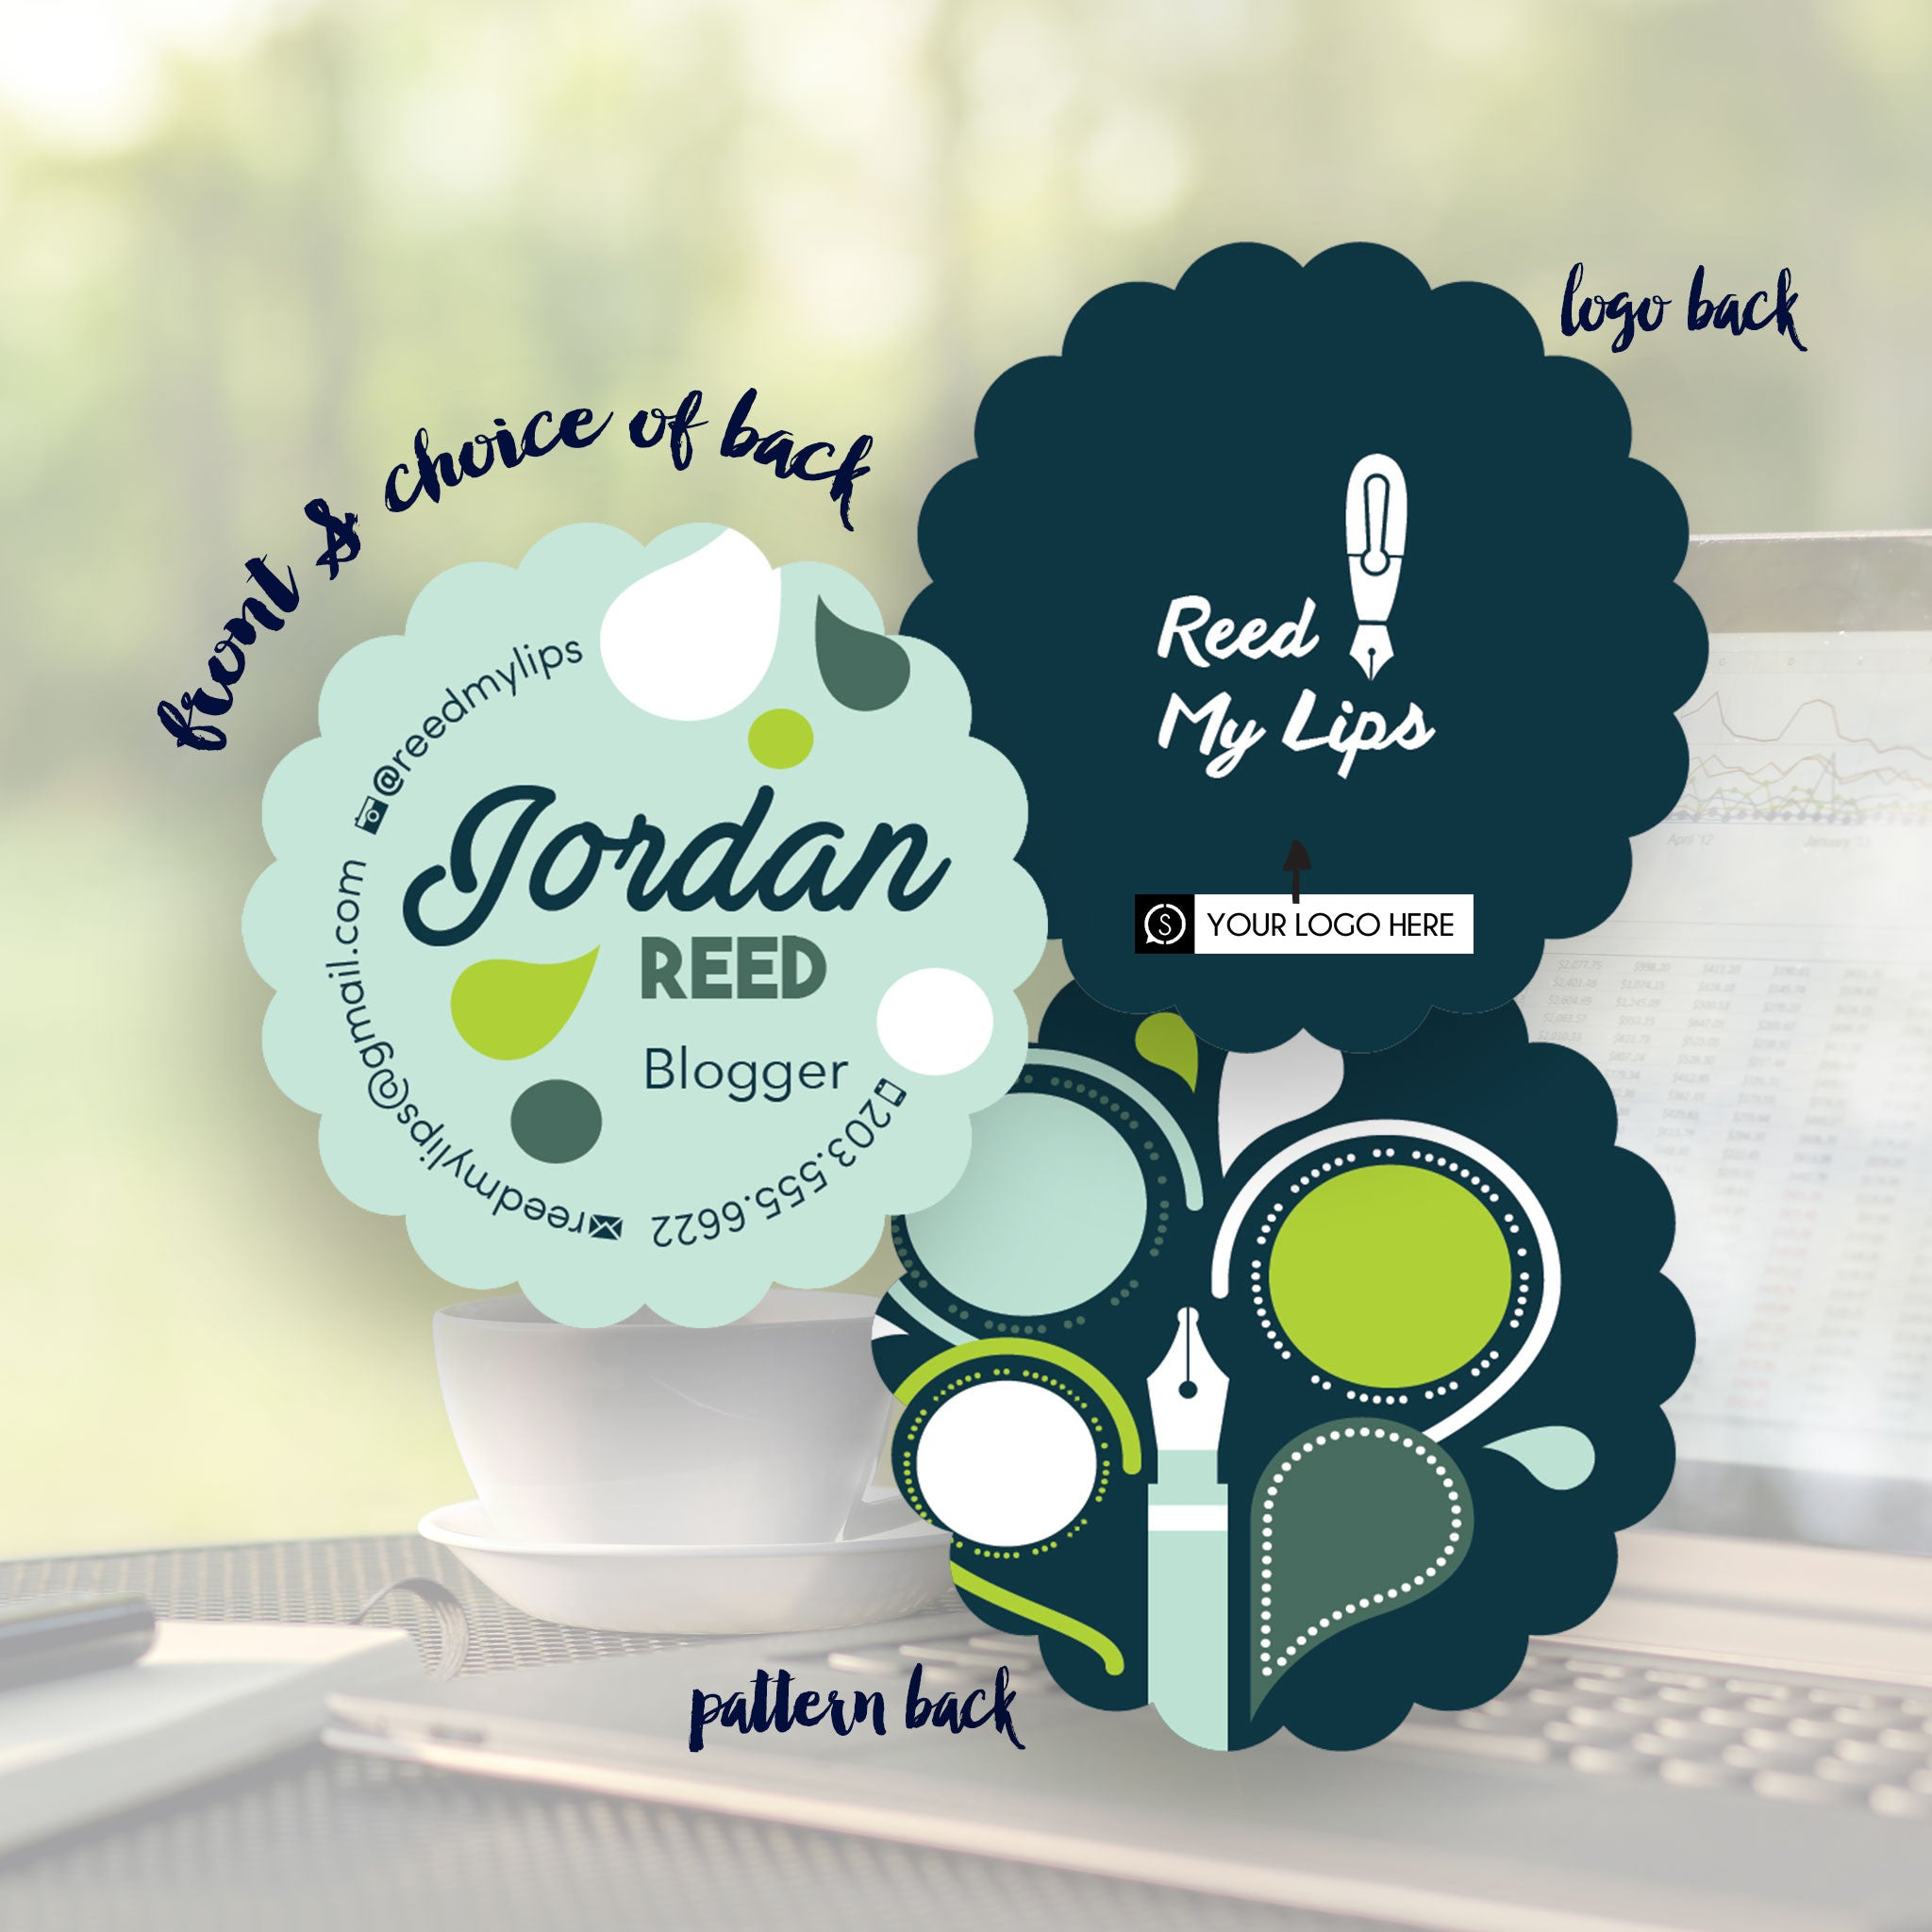 Blogger Business Card Designs